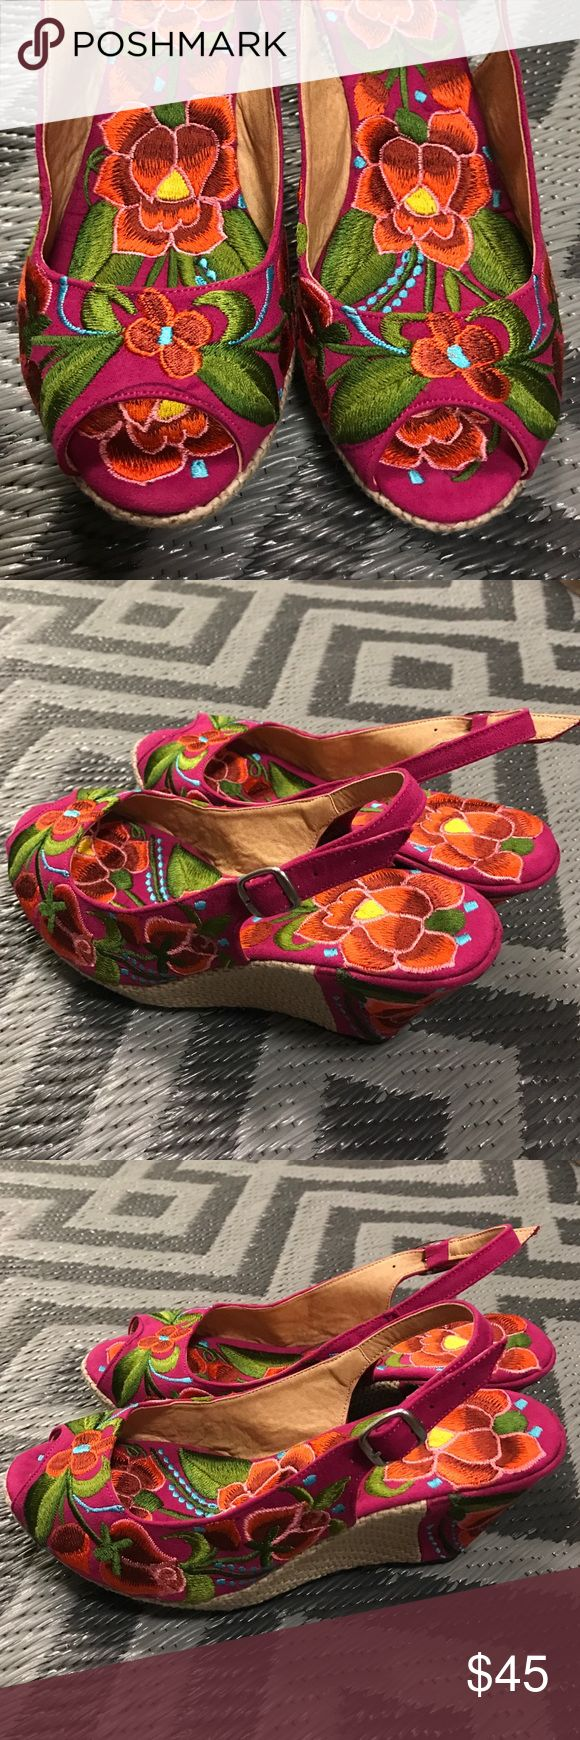 "💋New Embroidered Platforms Mexican Floral Boho Brand new, beautiful floral embroidery! One-of-a-Kind unique design handcrafted in Mexico. Imported. 3 1/4"" tall and 1"" tall in the front. Size 8. More sizes available check my other listings! Cielito Lindo  Shoes Platforms"